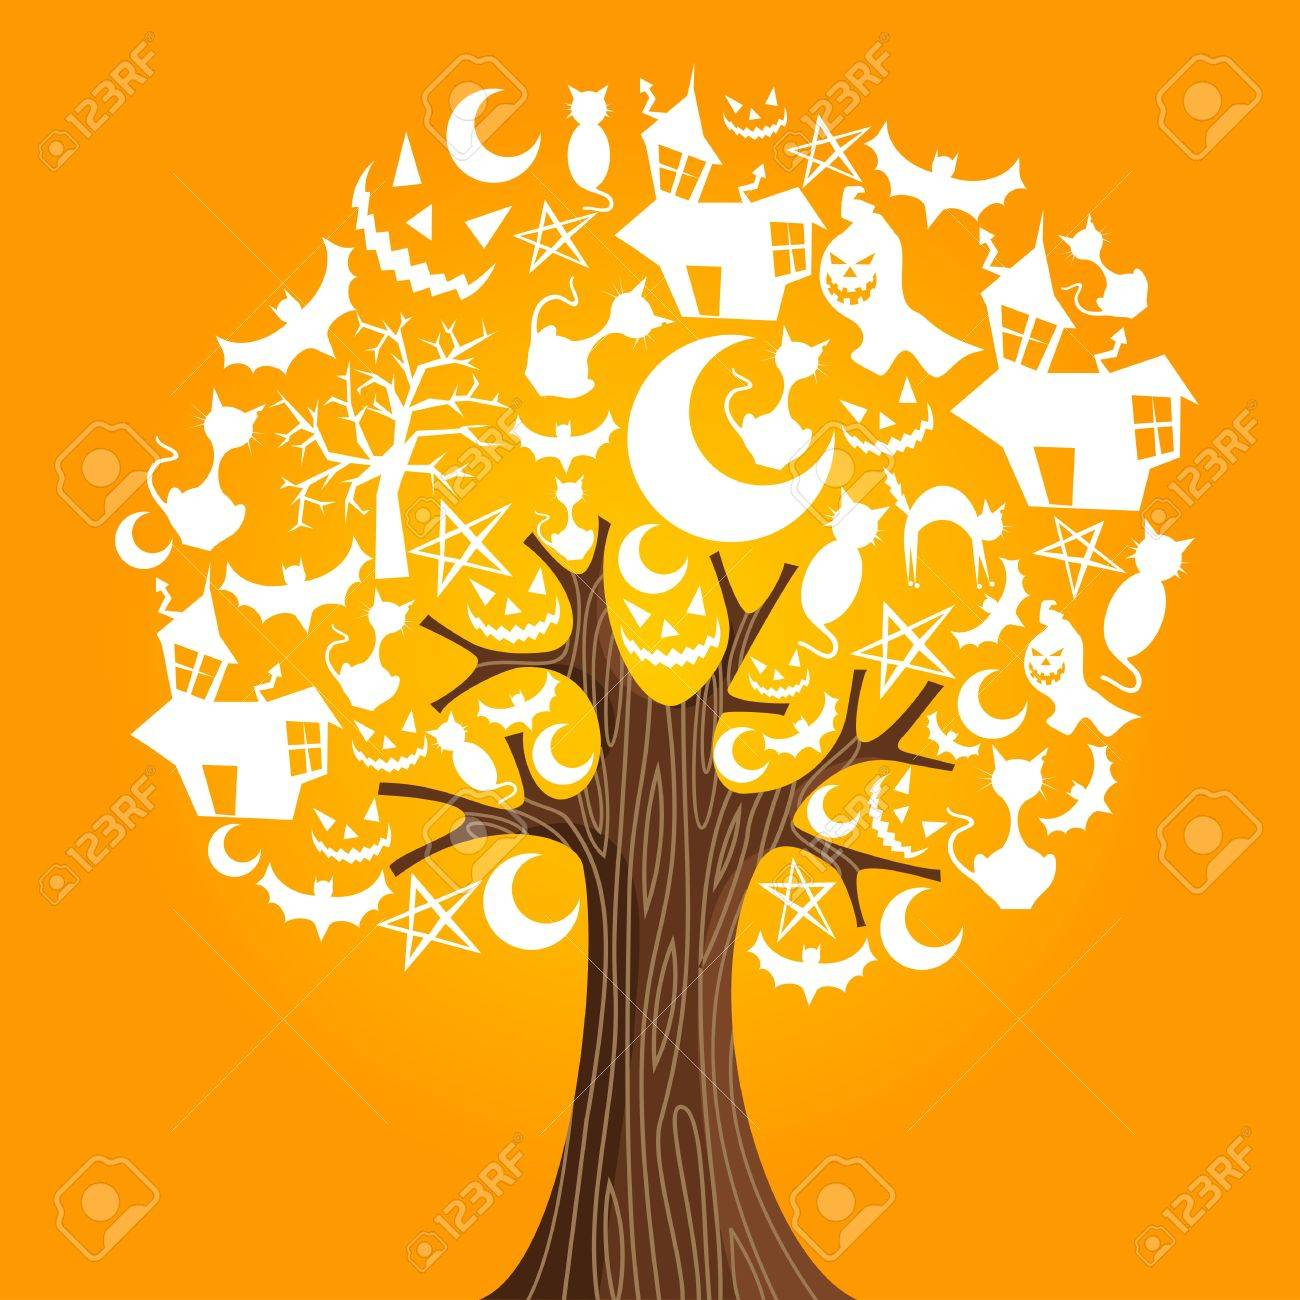 Halloween tree icons background  Vector illustration layered for easy manipulation and custom coloring Stock Vector - 14777610